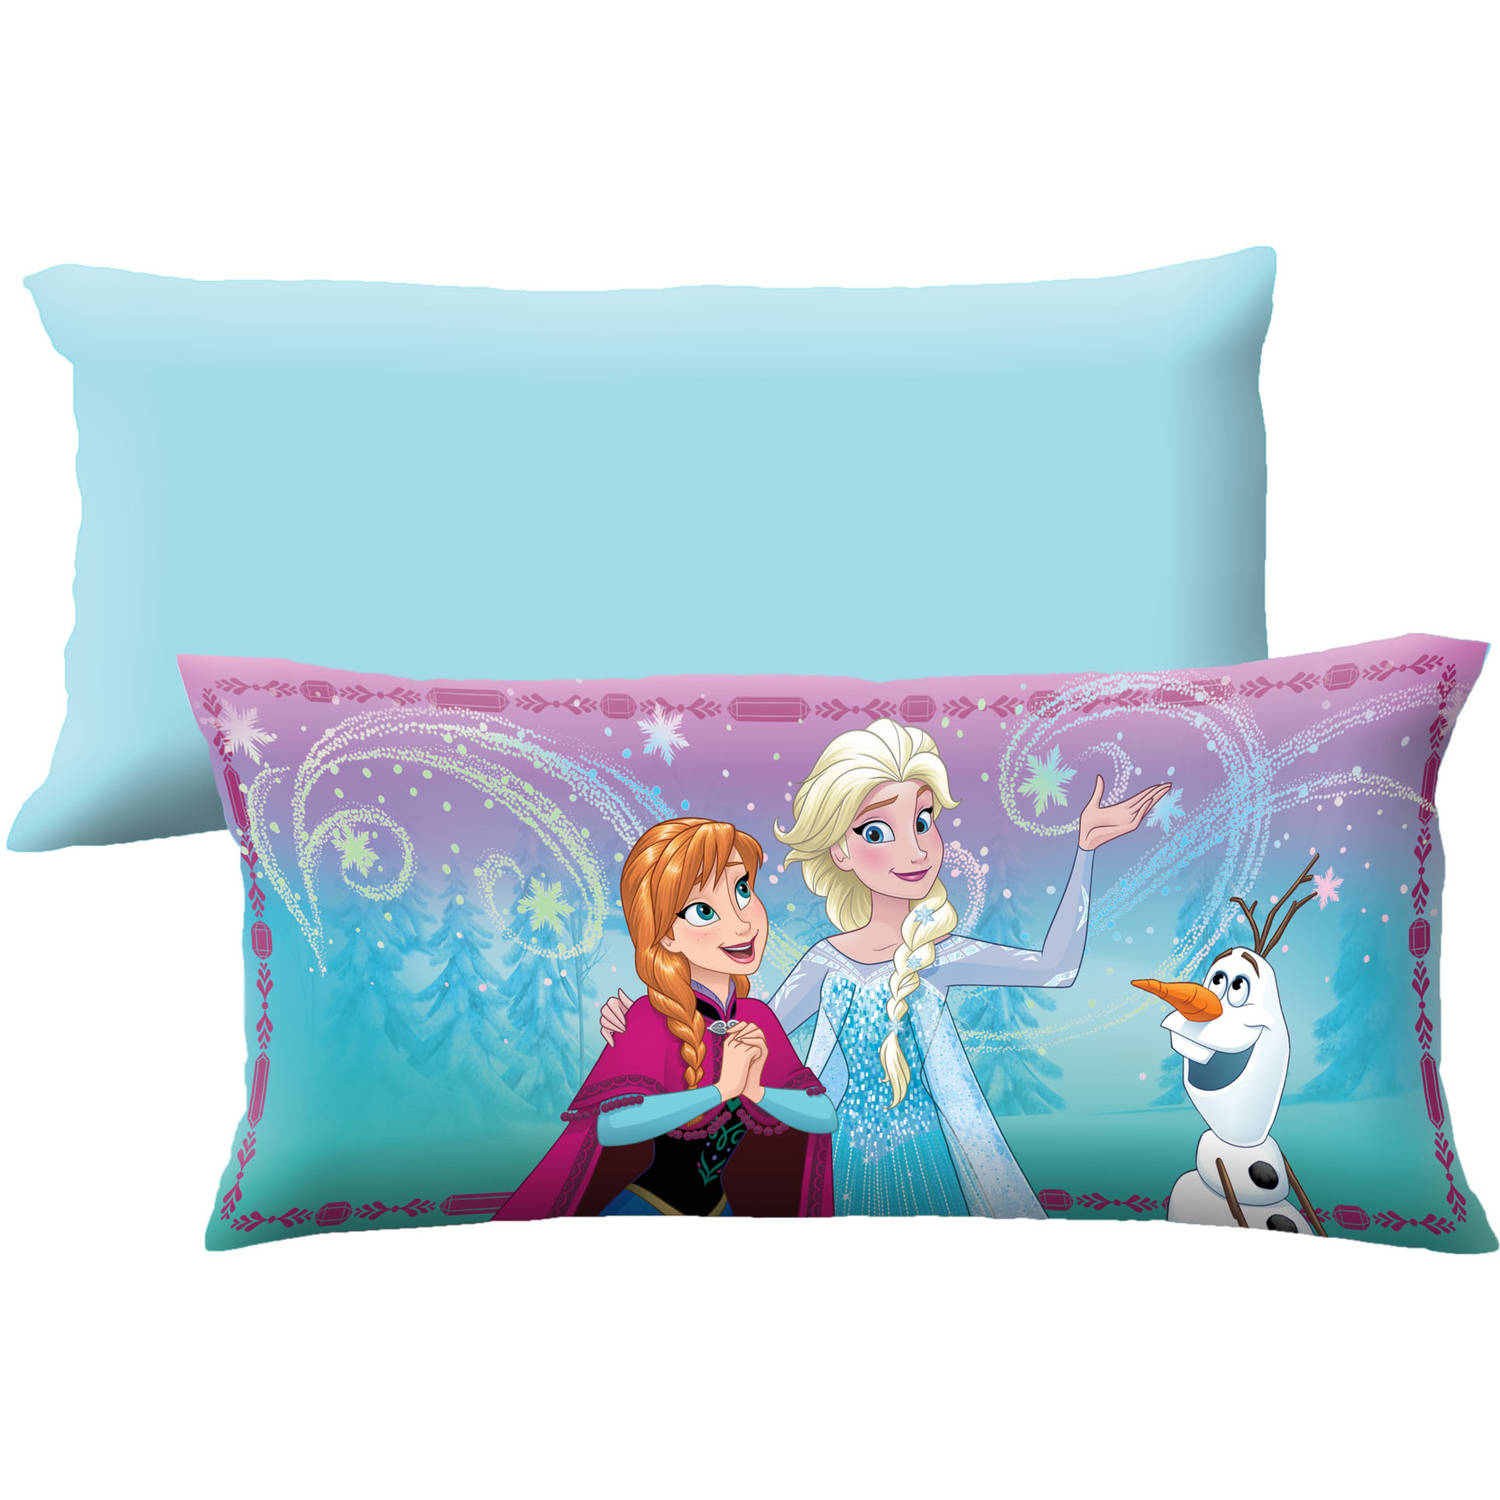 "Disney's Frozen ""Winter Magic"" Body Pillow"